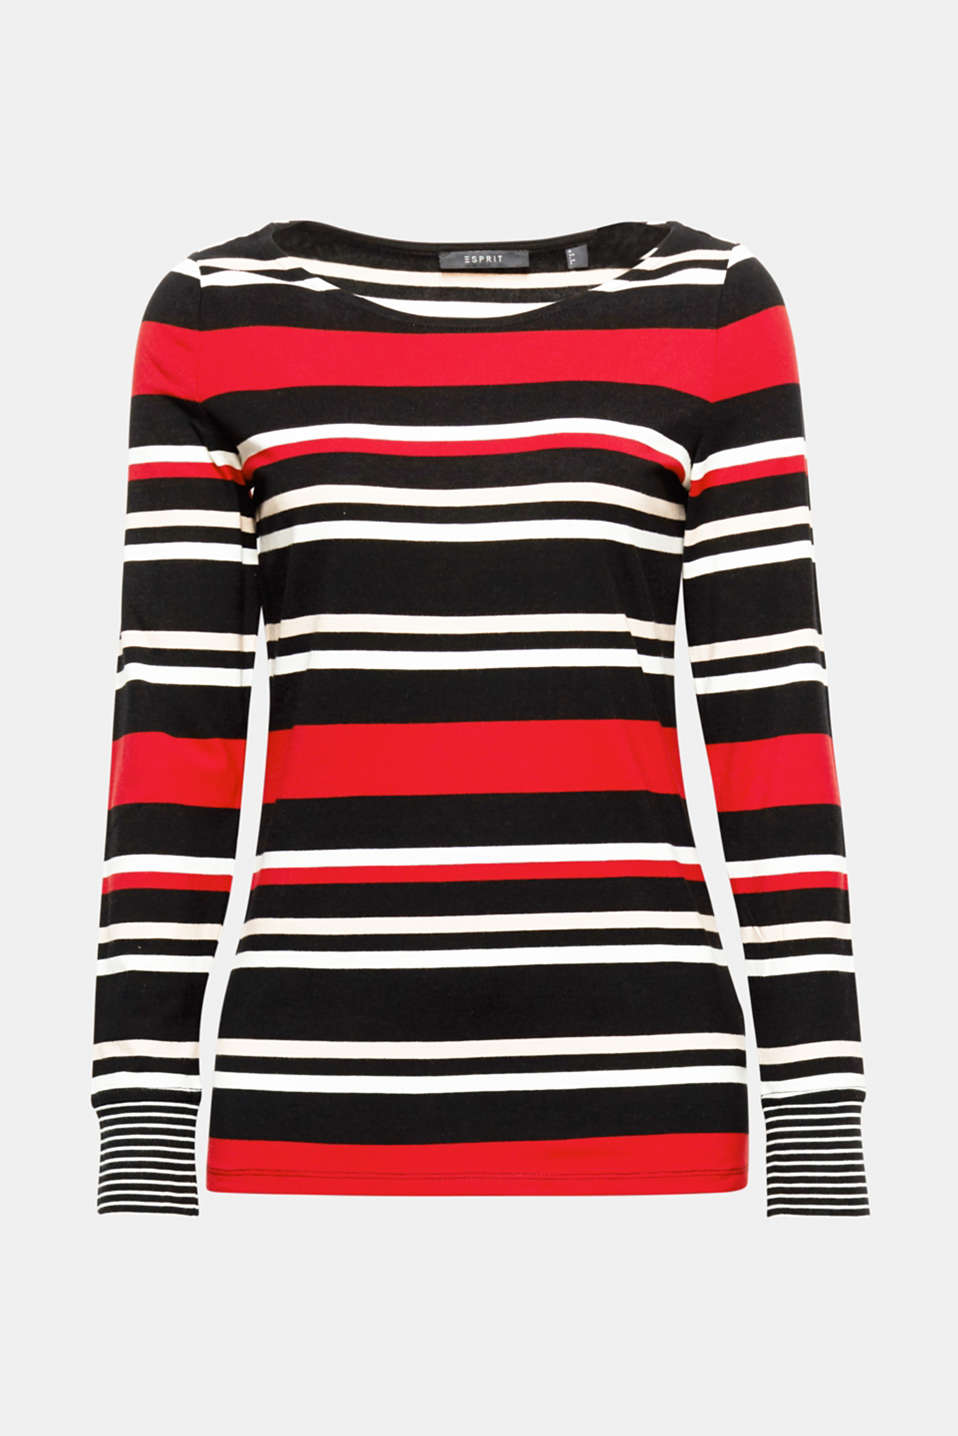 Striped or plain: this lightweight long sleeve top with a bateau neckline sports striped cuffs for both.